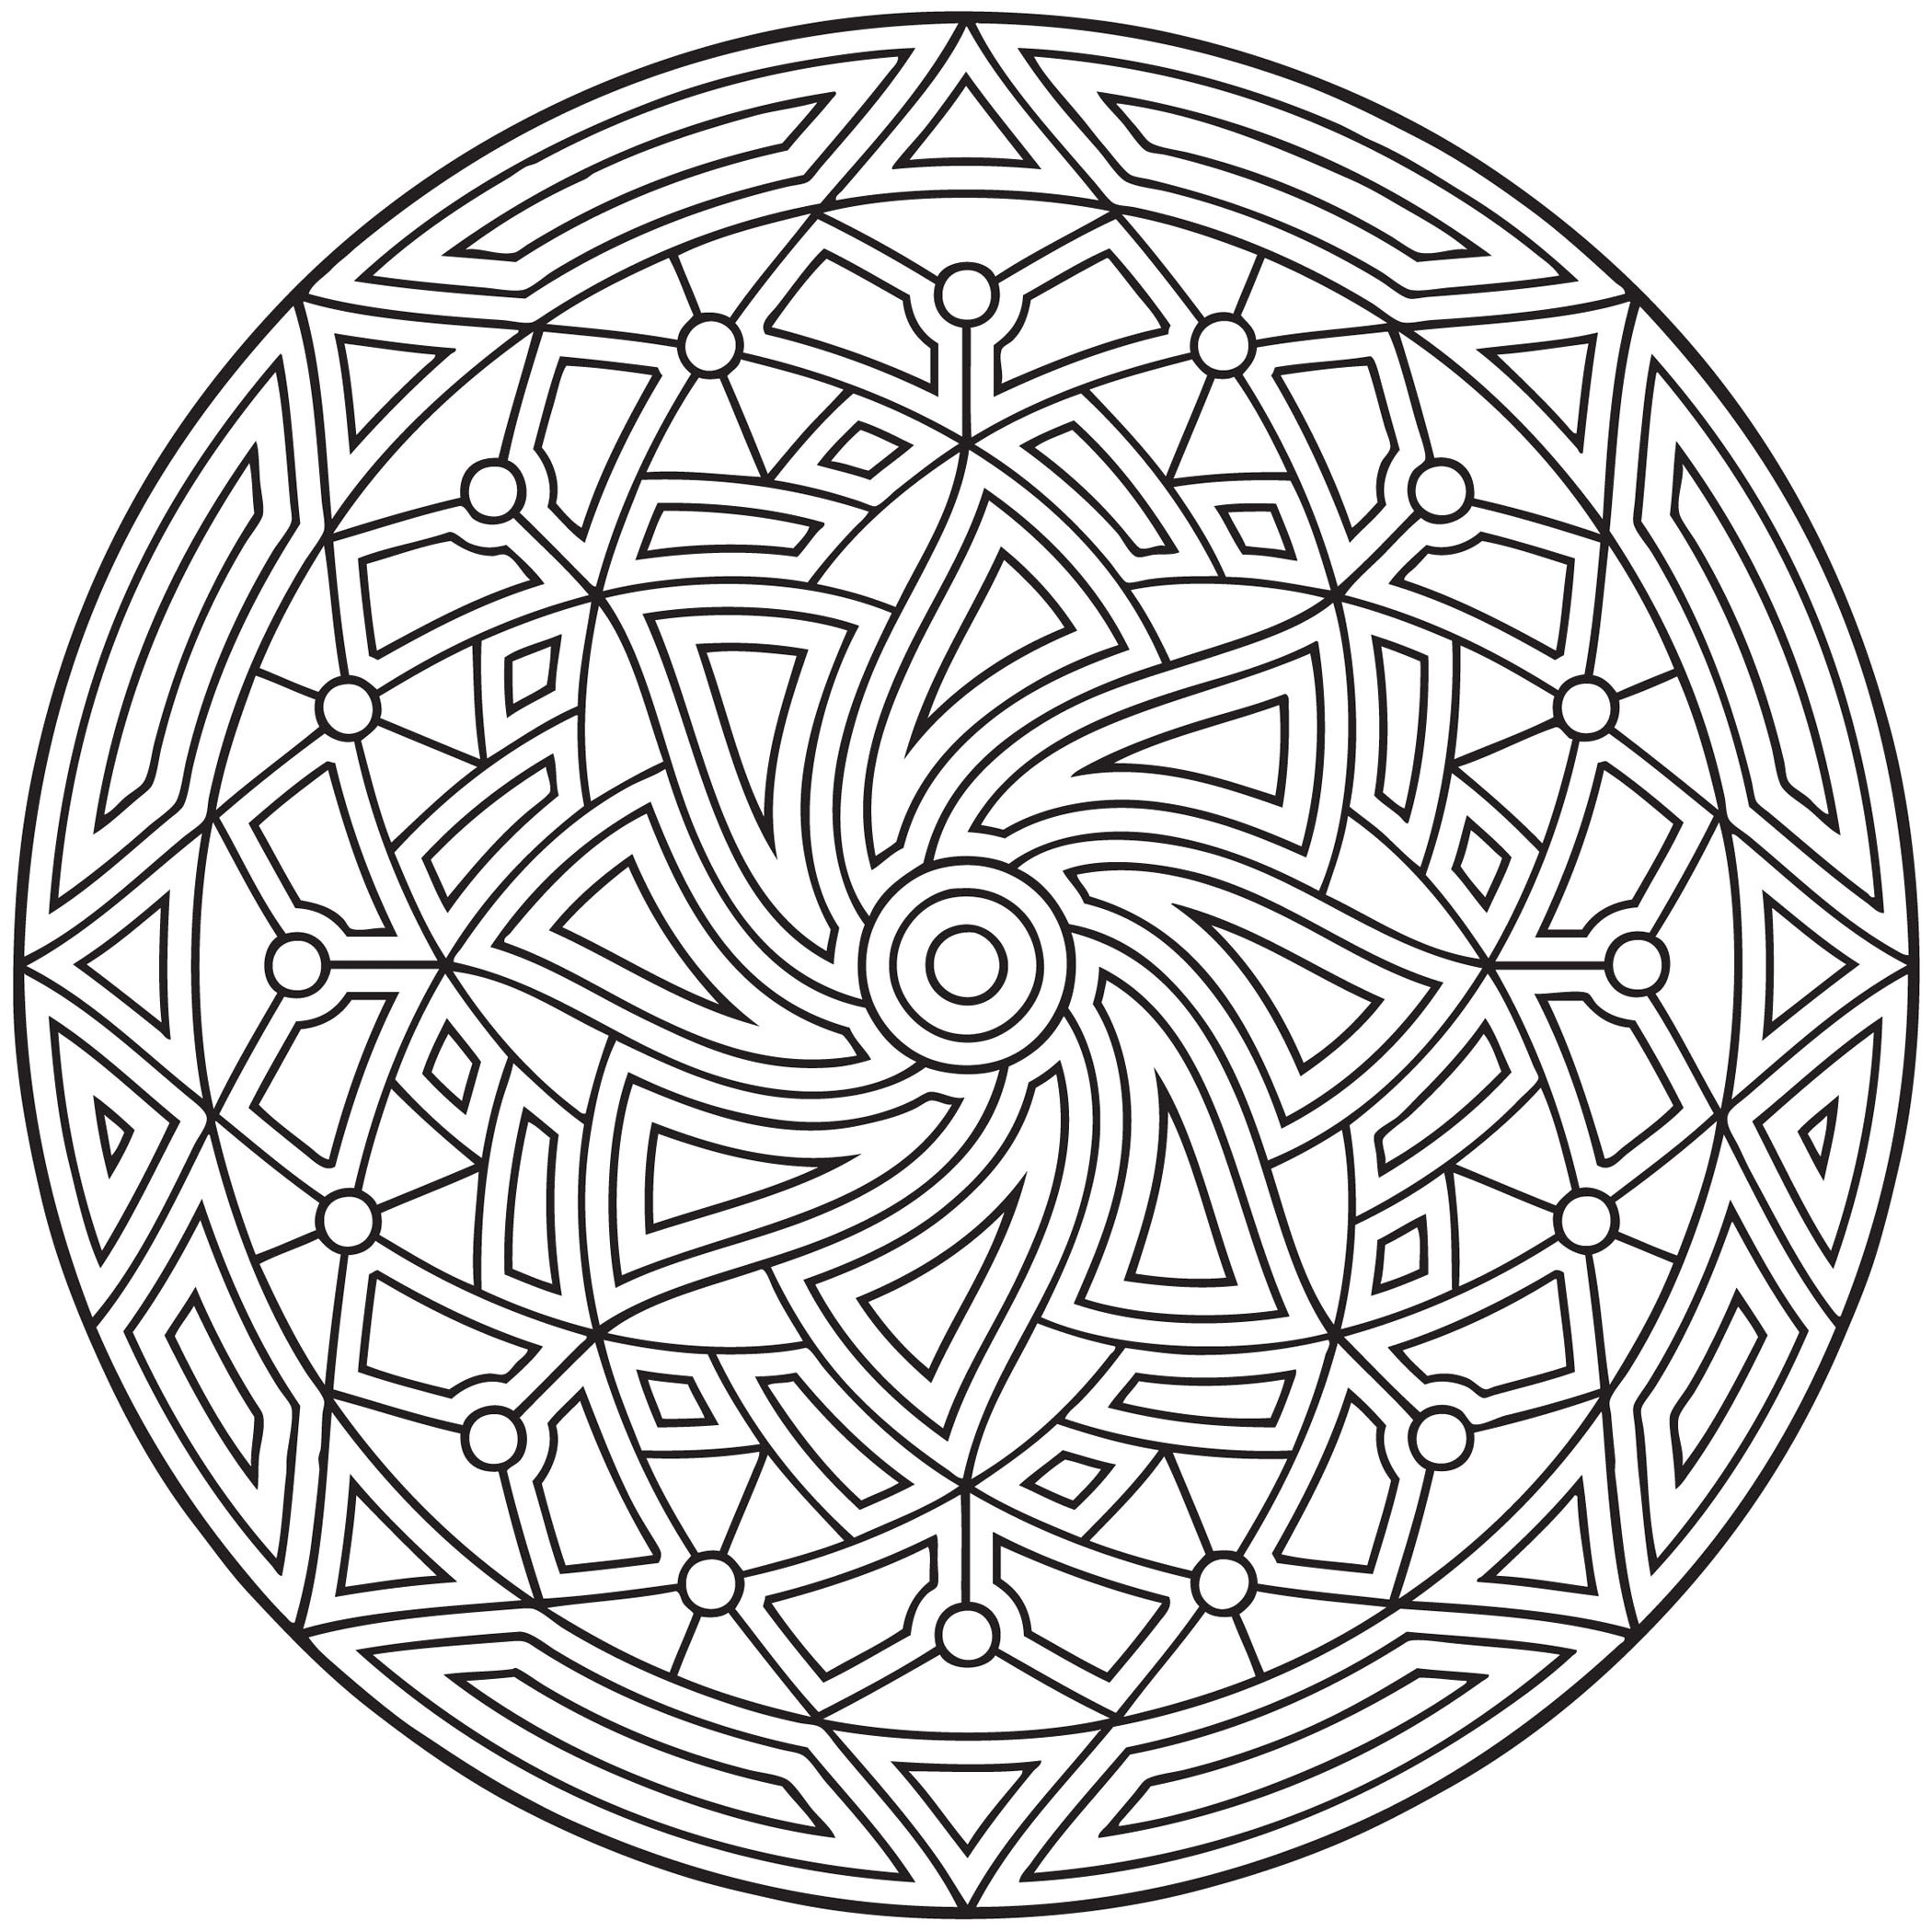 Zany image in printable geometric coloring pages